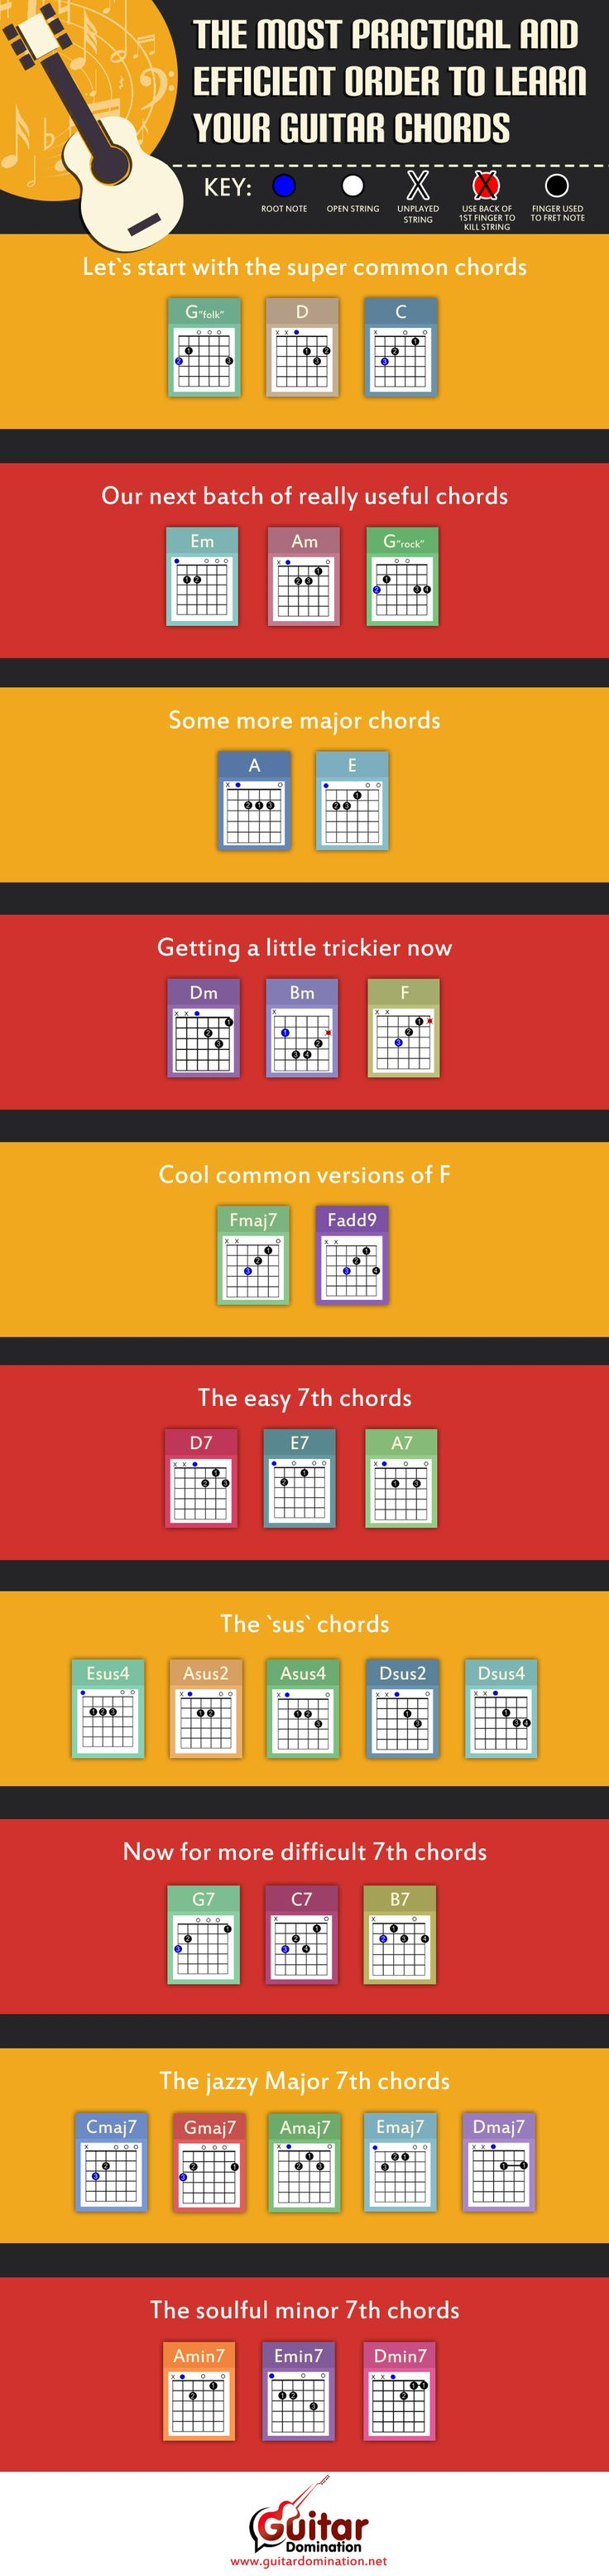 The Chords Every Guitarist Should Know 32 Crucial Chord Shapes Electric Guitar ChordsAcoustic ChordsEasy